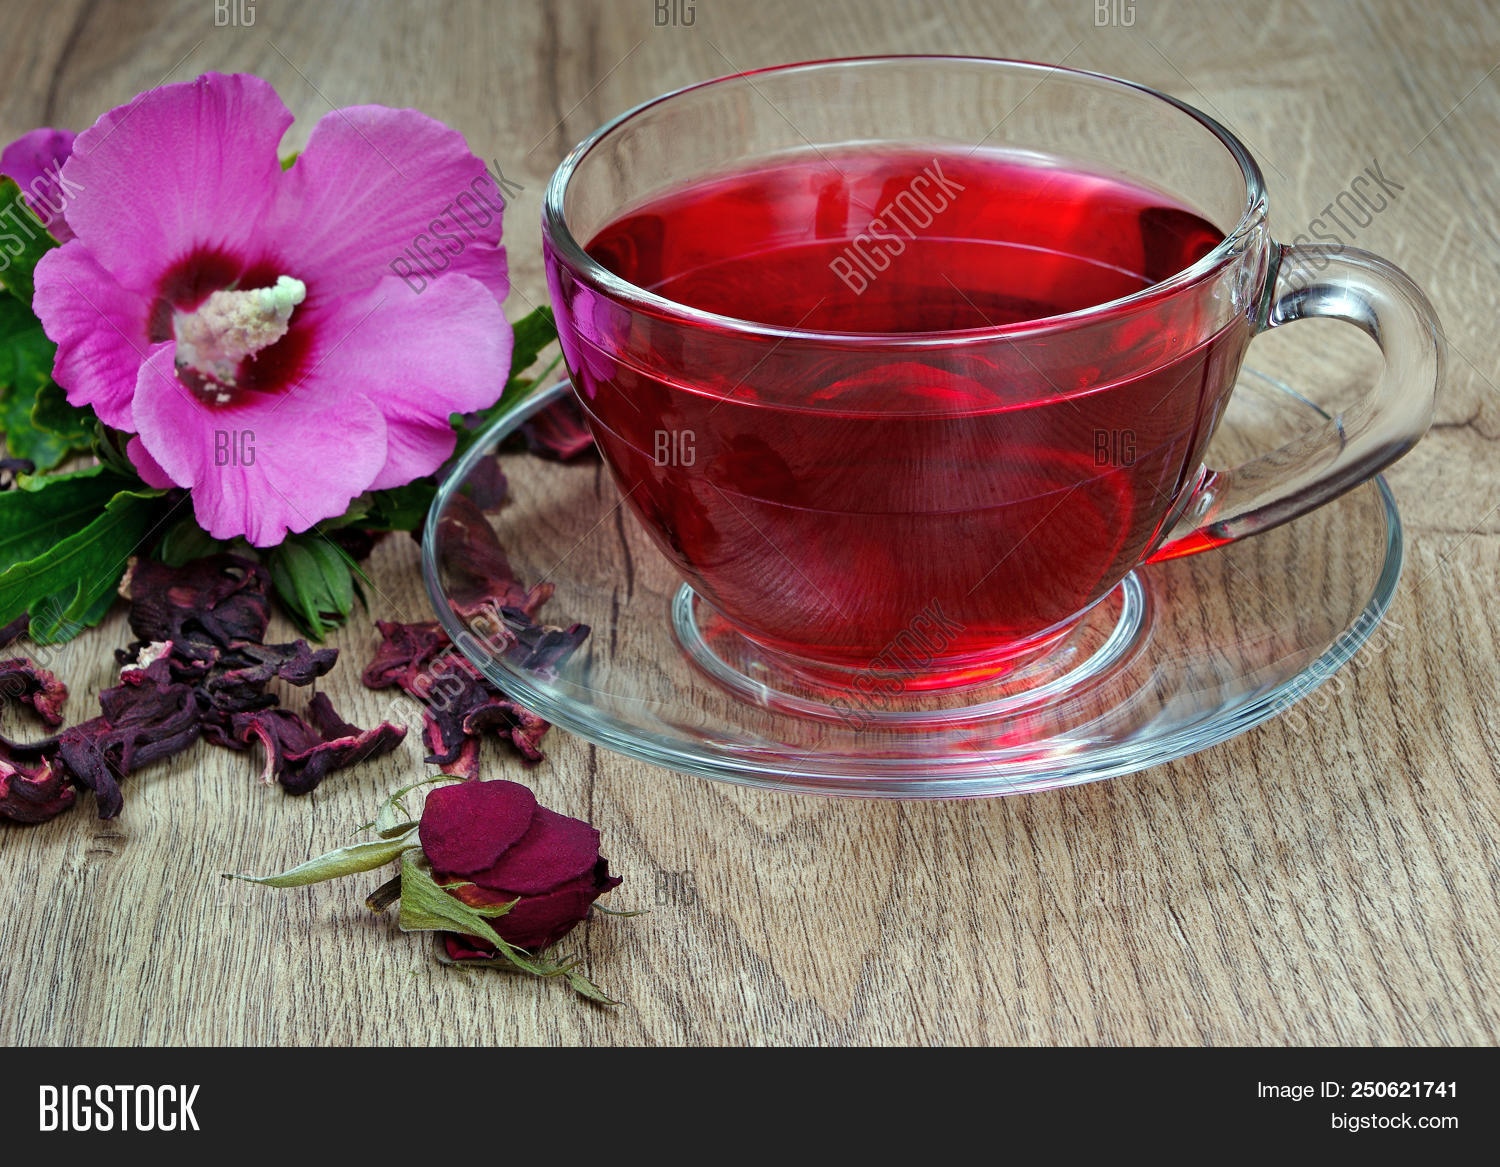 Hibiscus Tea Glass Cup Image Photo Free Trial Bigstock